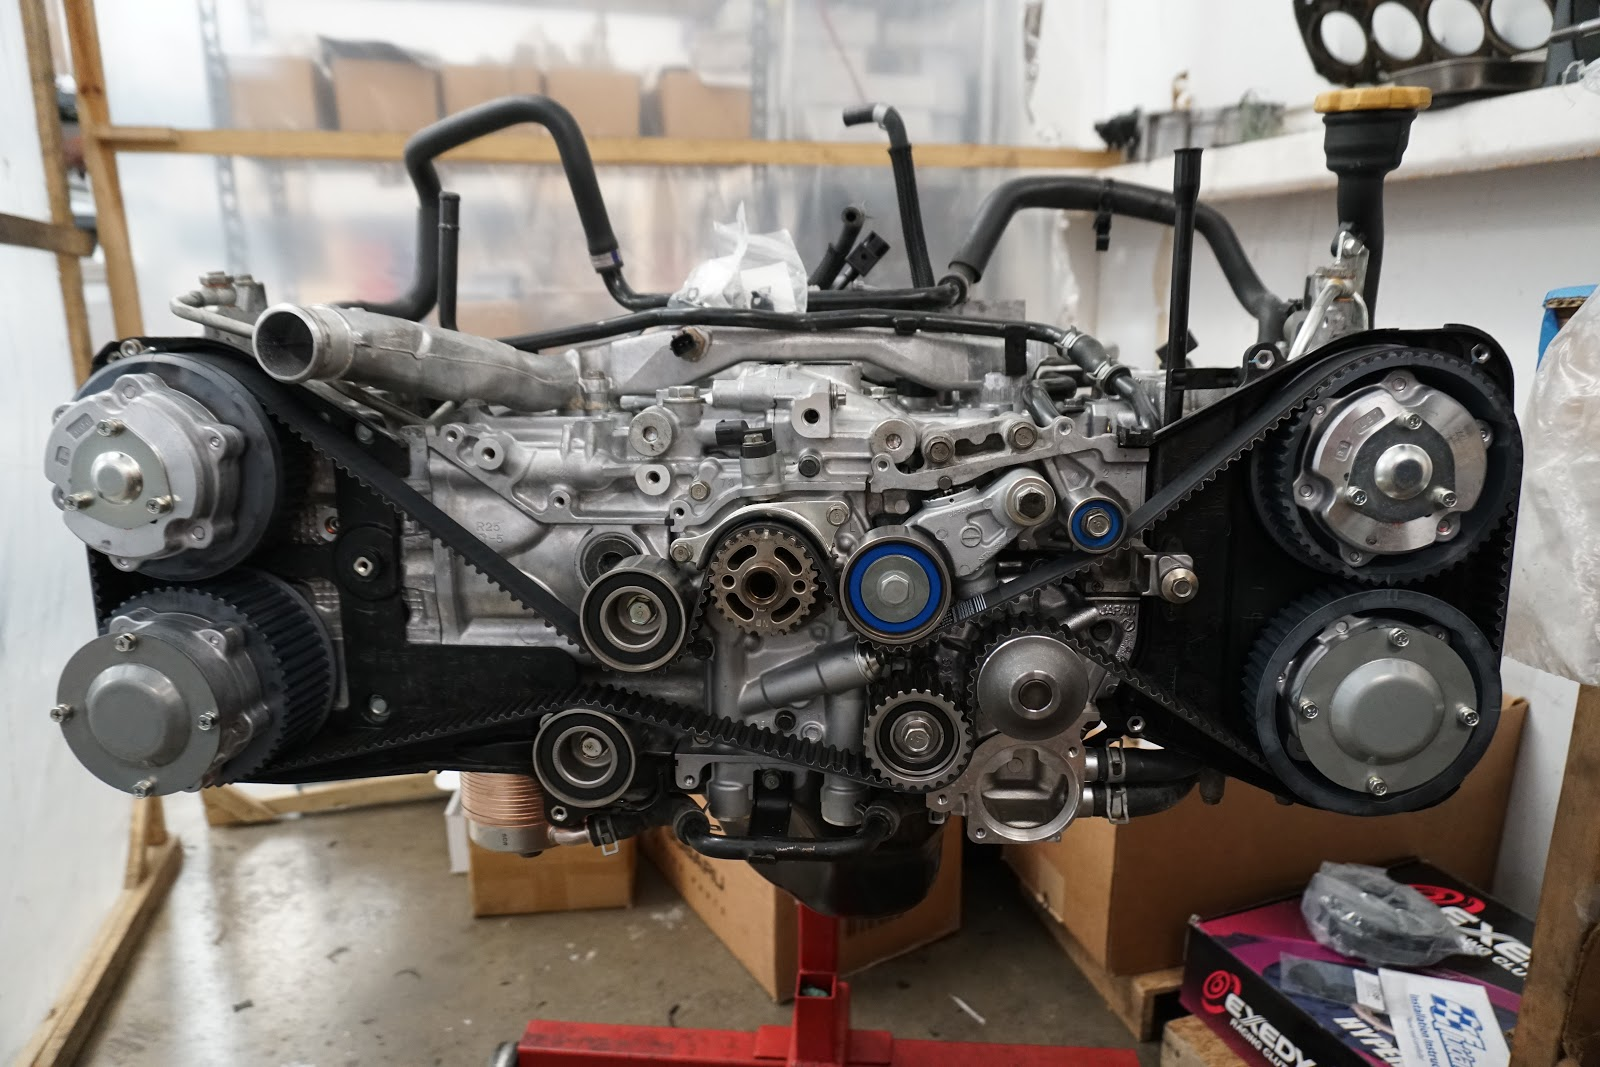 Circuit Motorsports: Flat-Out: 600+hp Built and Tuned STI